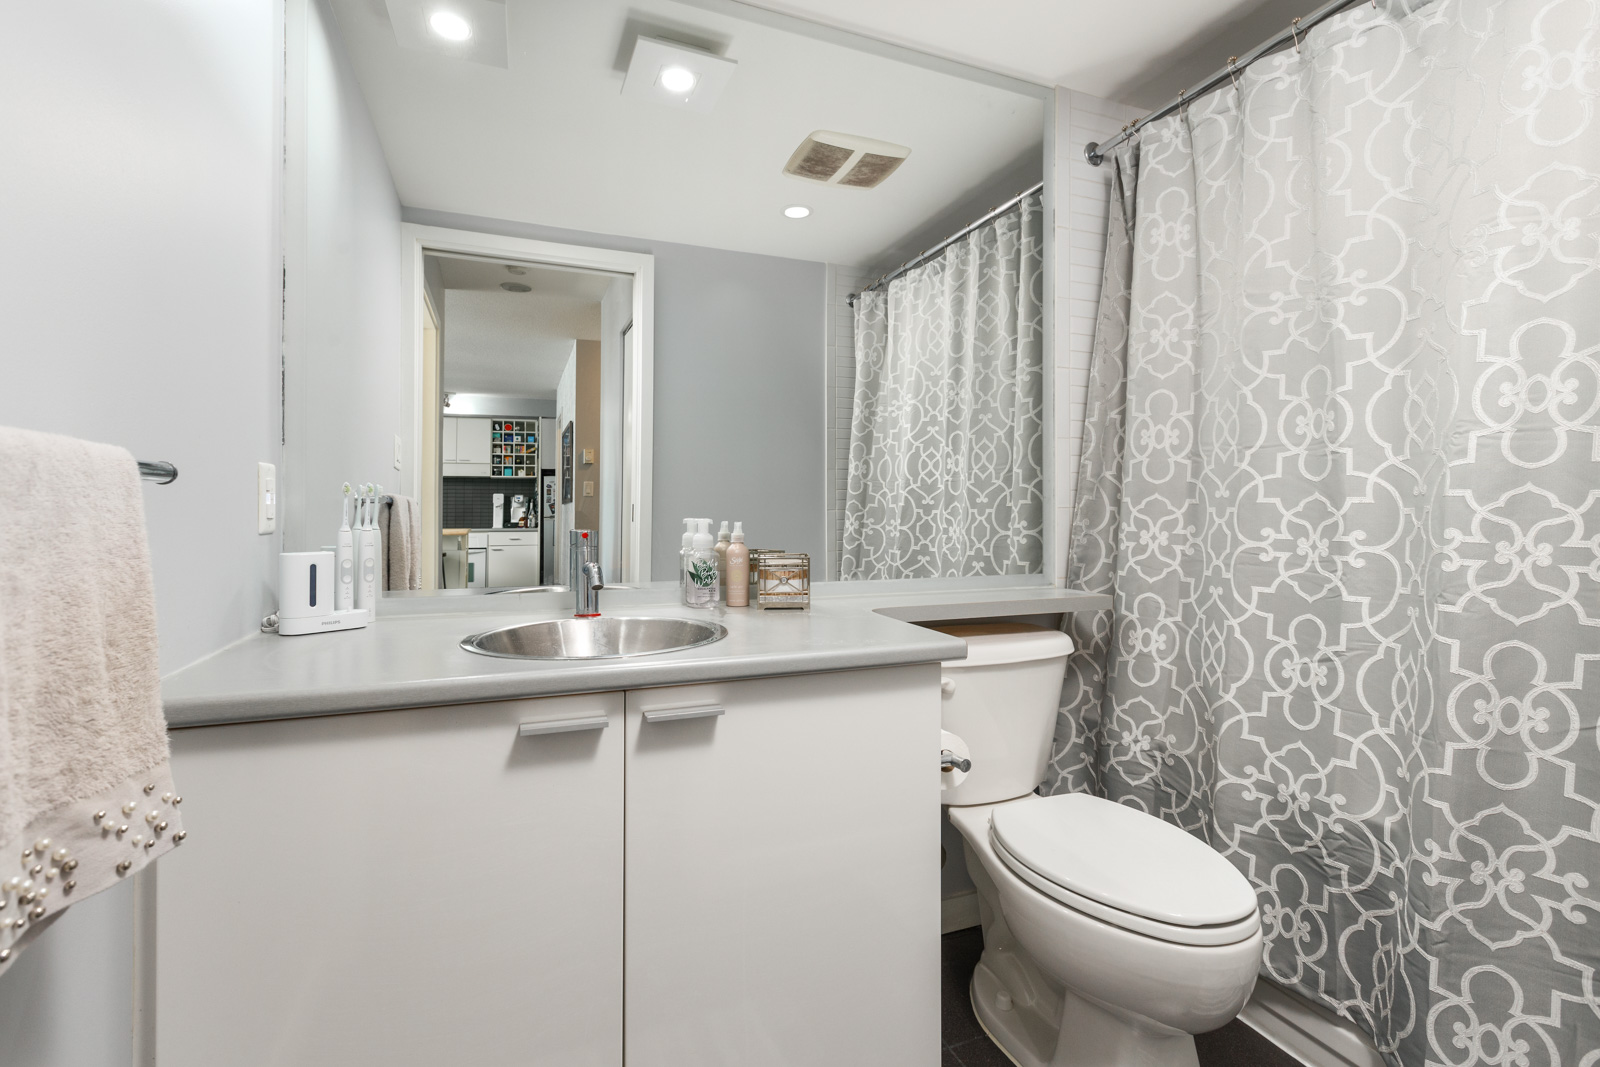 Bathroom inside Vancouver rental condo.